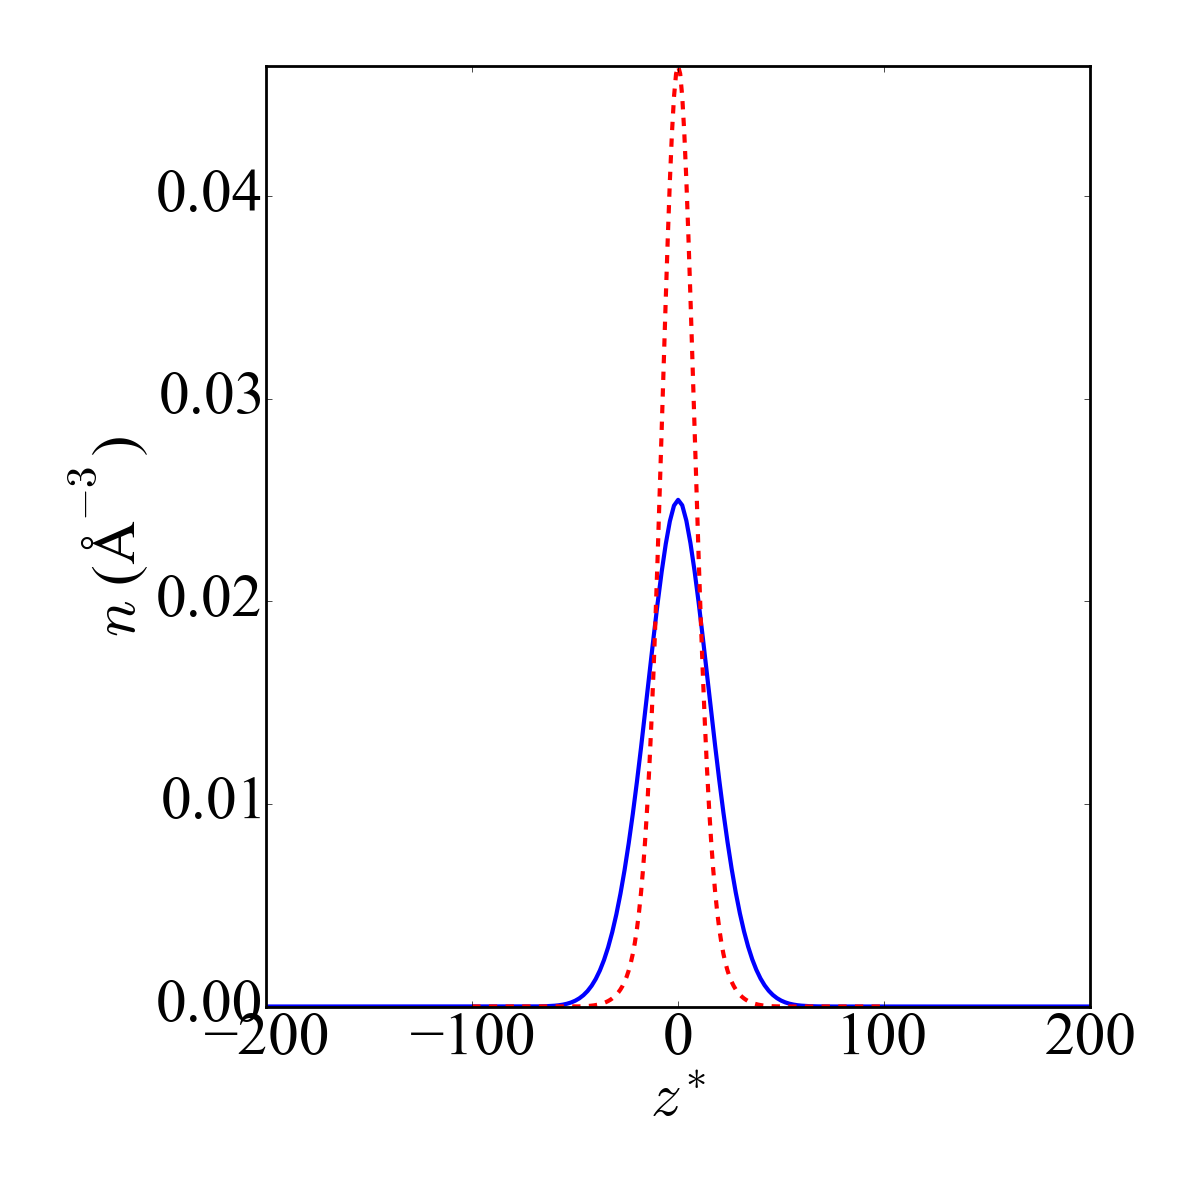 Temporal evolution of the number density profiles for gas-phase (dashed lines) and liquid-phase (solid lines) argon. The three columns represent the times,